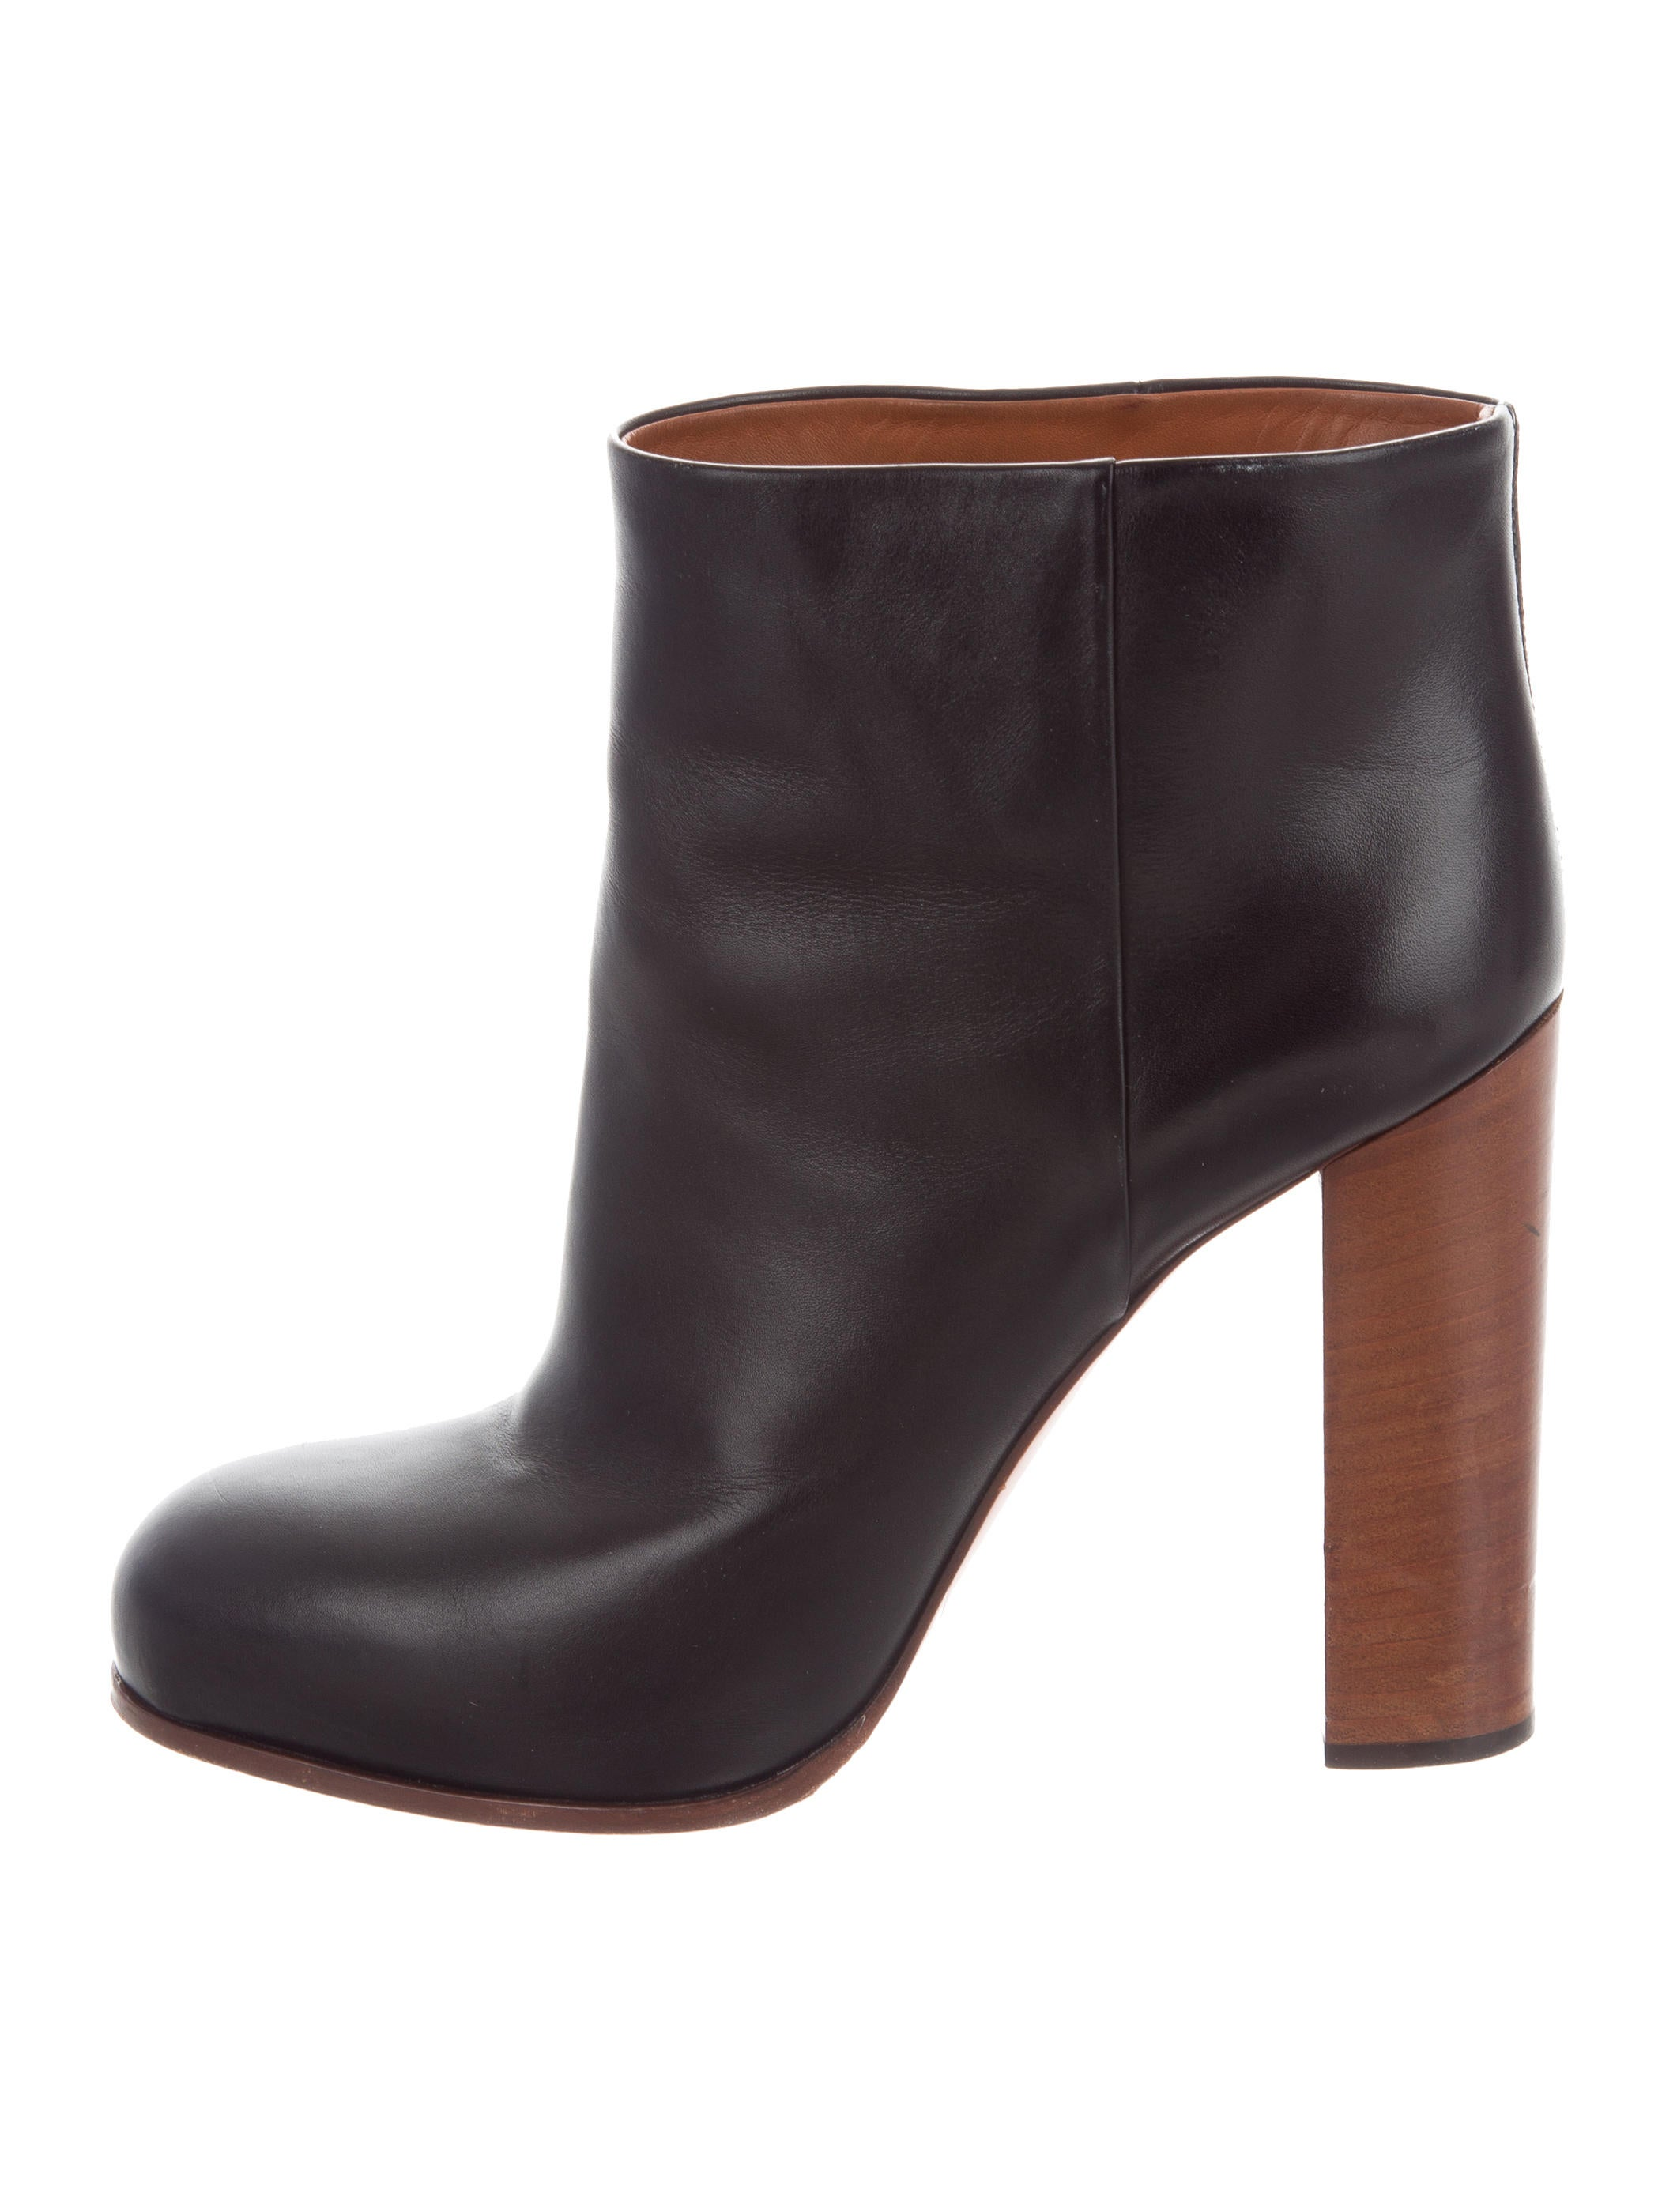 Céline Round-Toe Leather Ankle Boots